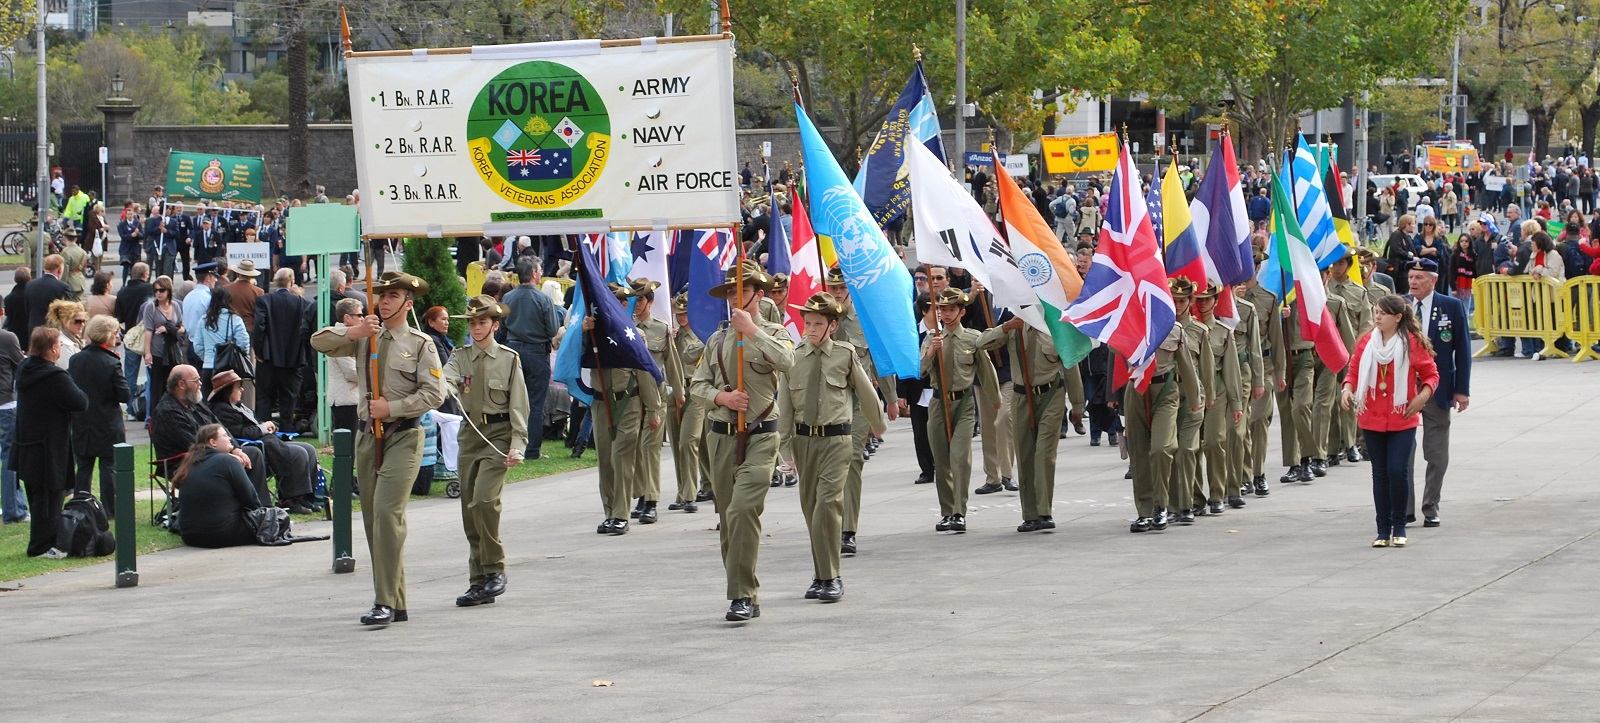 Korean War ex-servicemen at the 2009 Anzac Day march in Melbourne (Photo:  Mattinbgn/Wikimedia Commons)